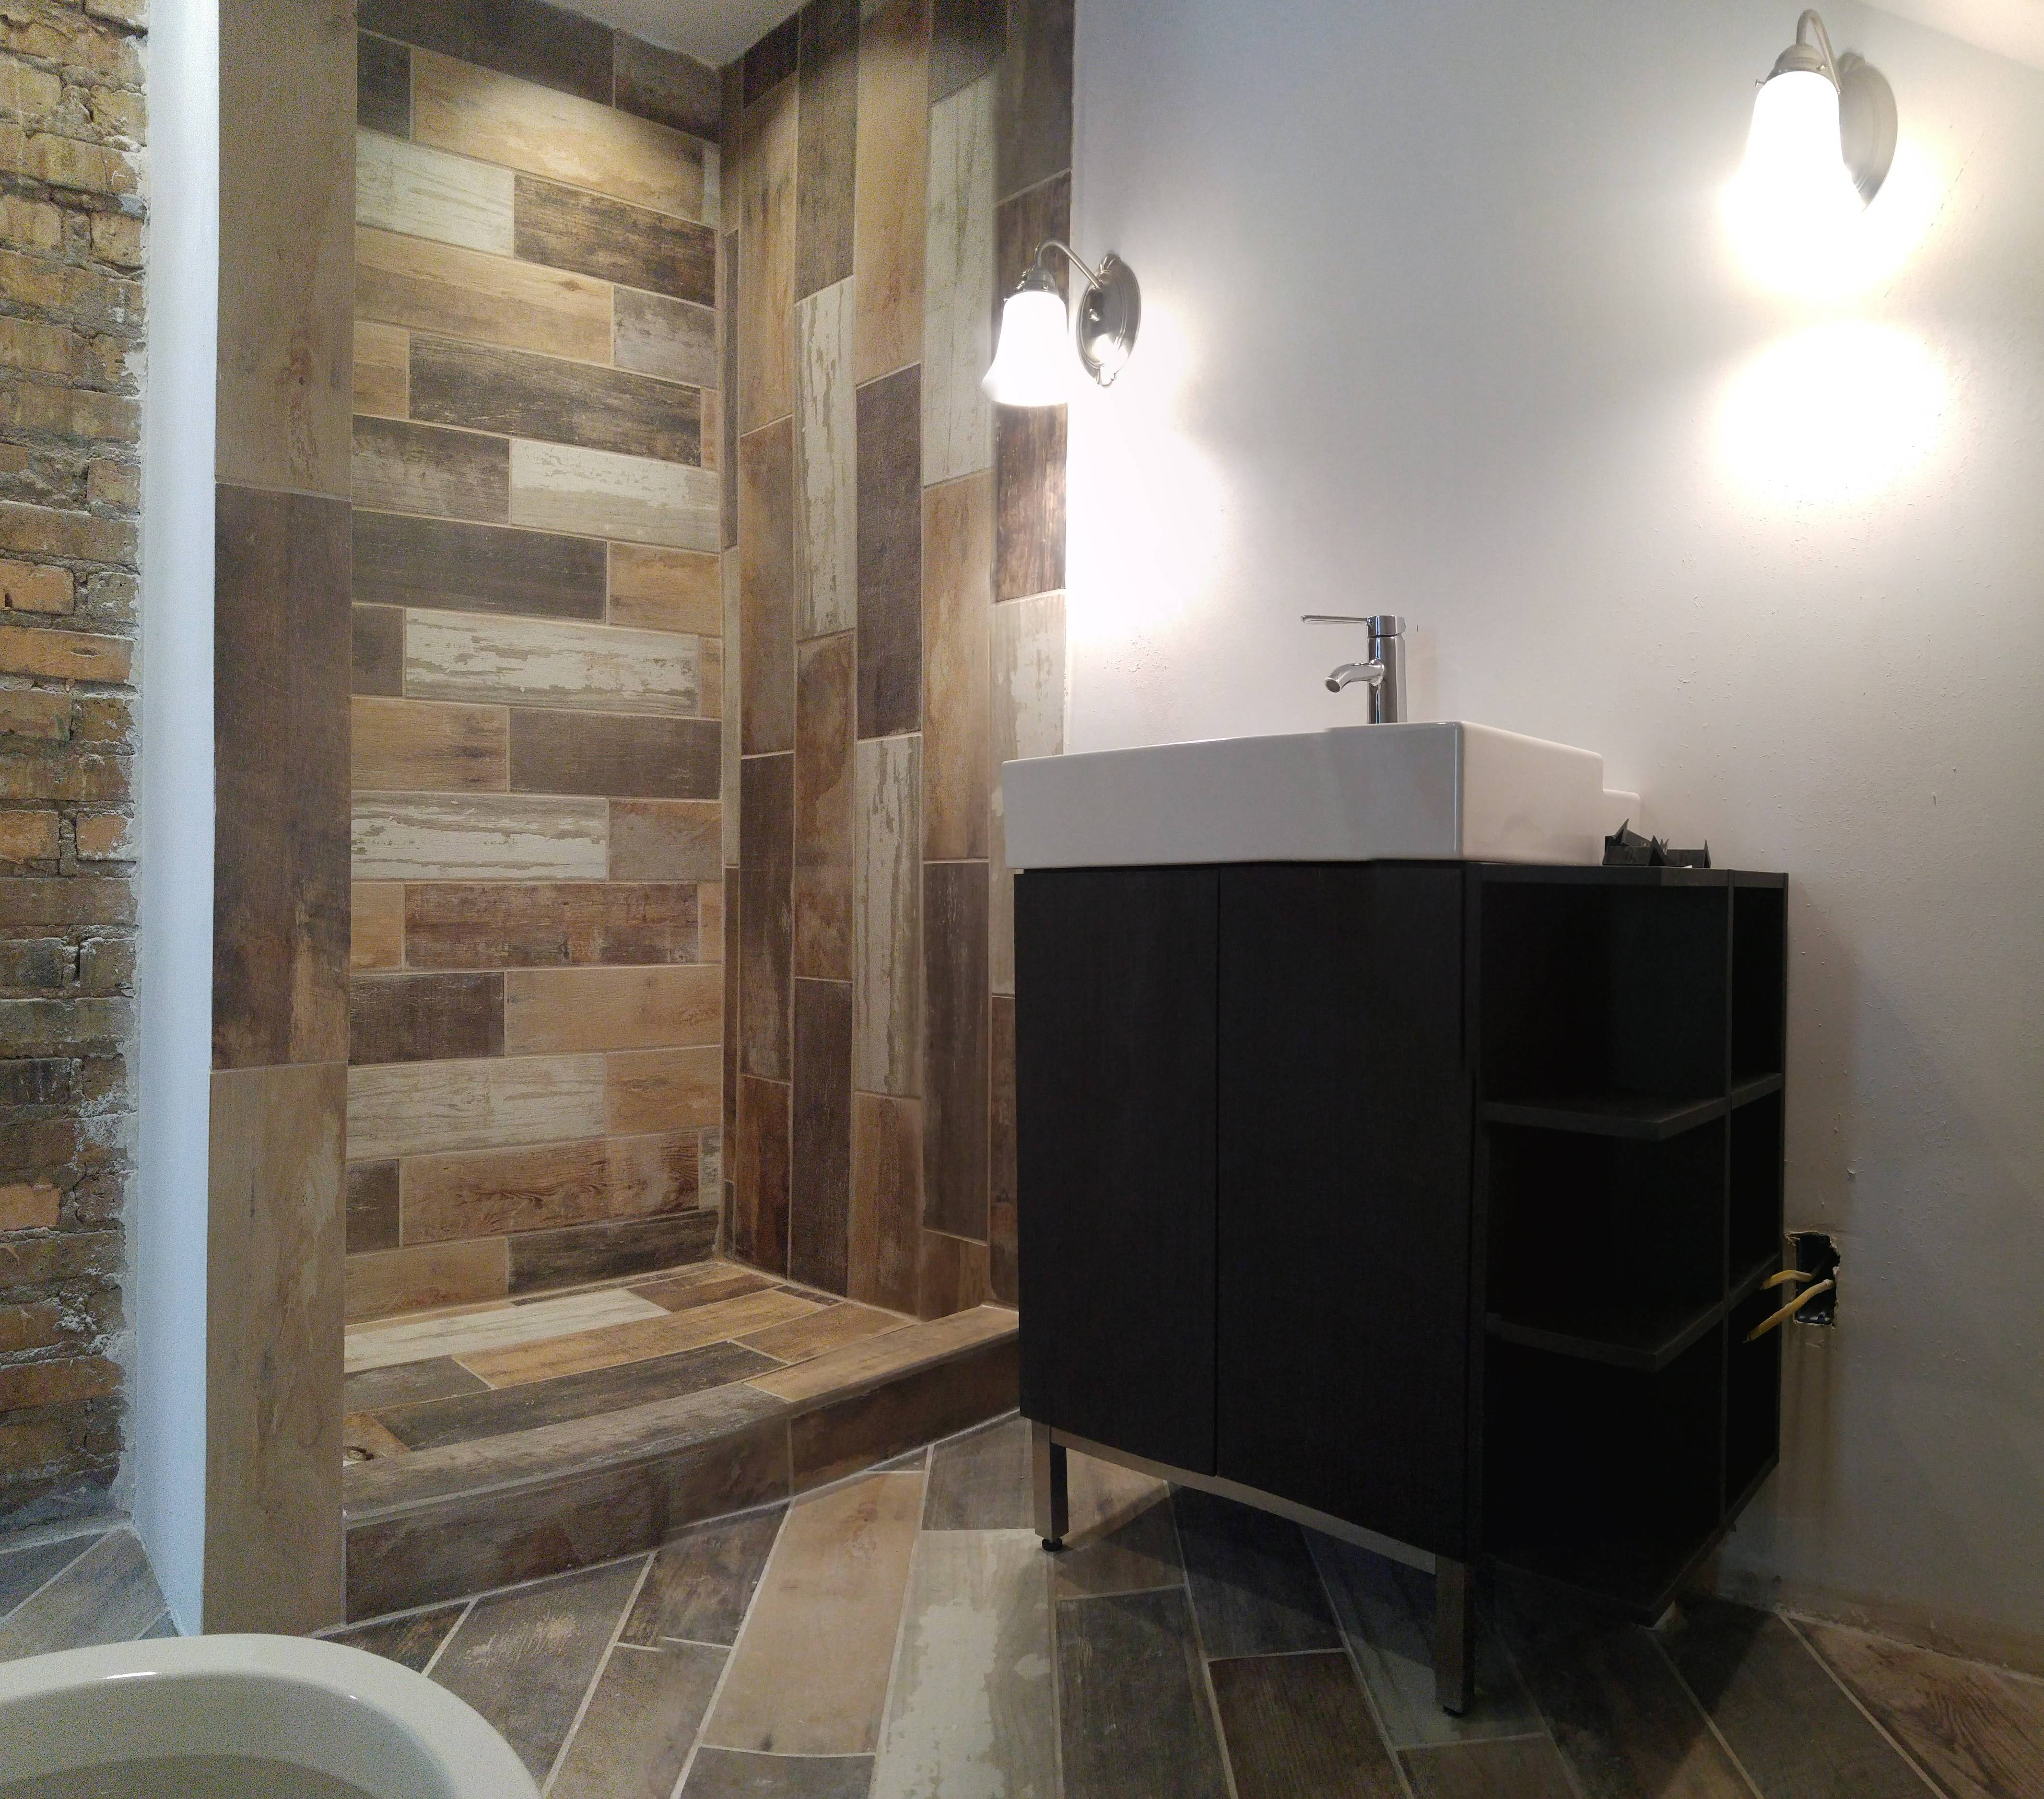 Anytime Restoration BASEMENTS TO BATHROOMS SMALL TO BIG A FULL - Bathroom remodeling rockford il